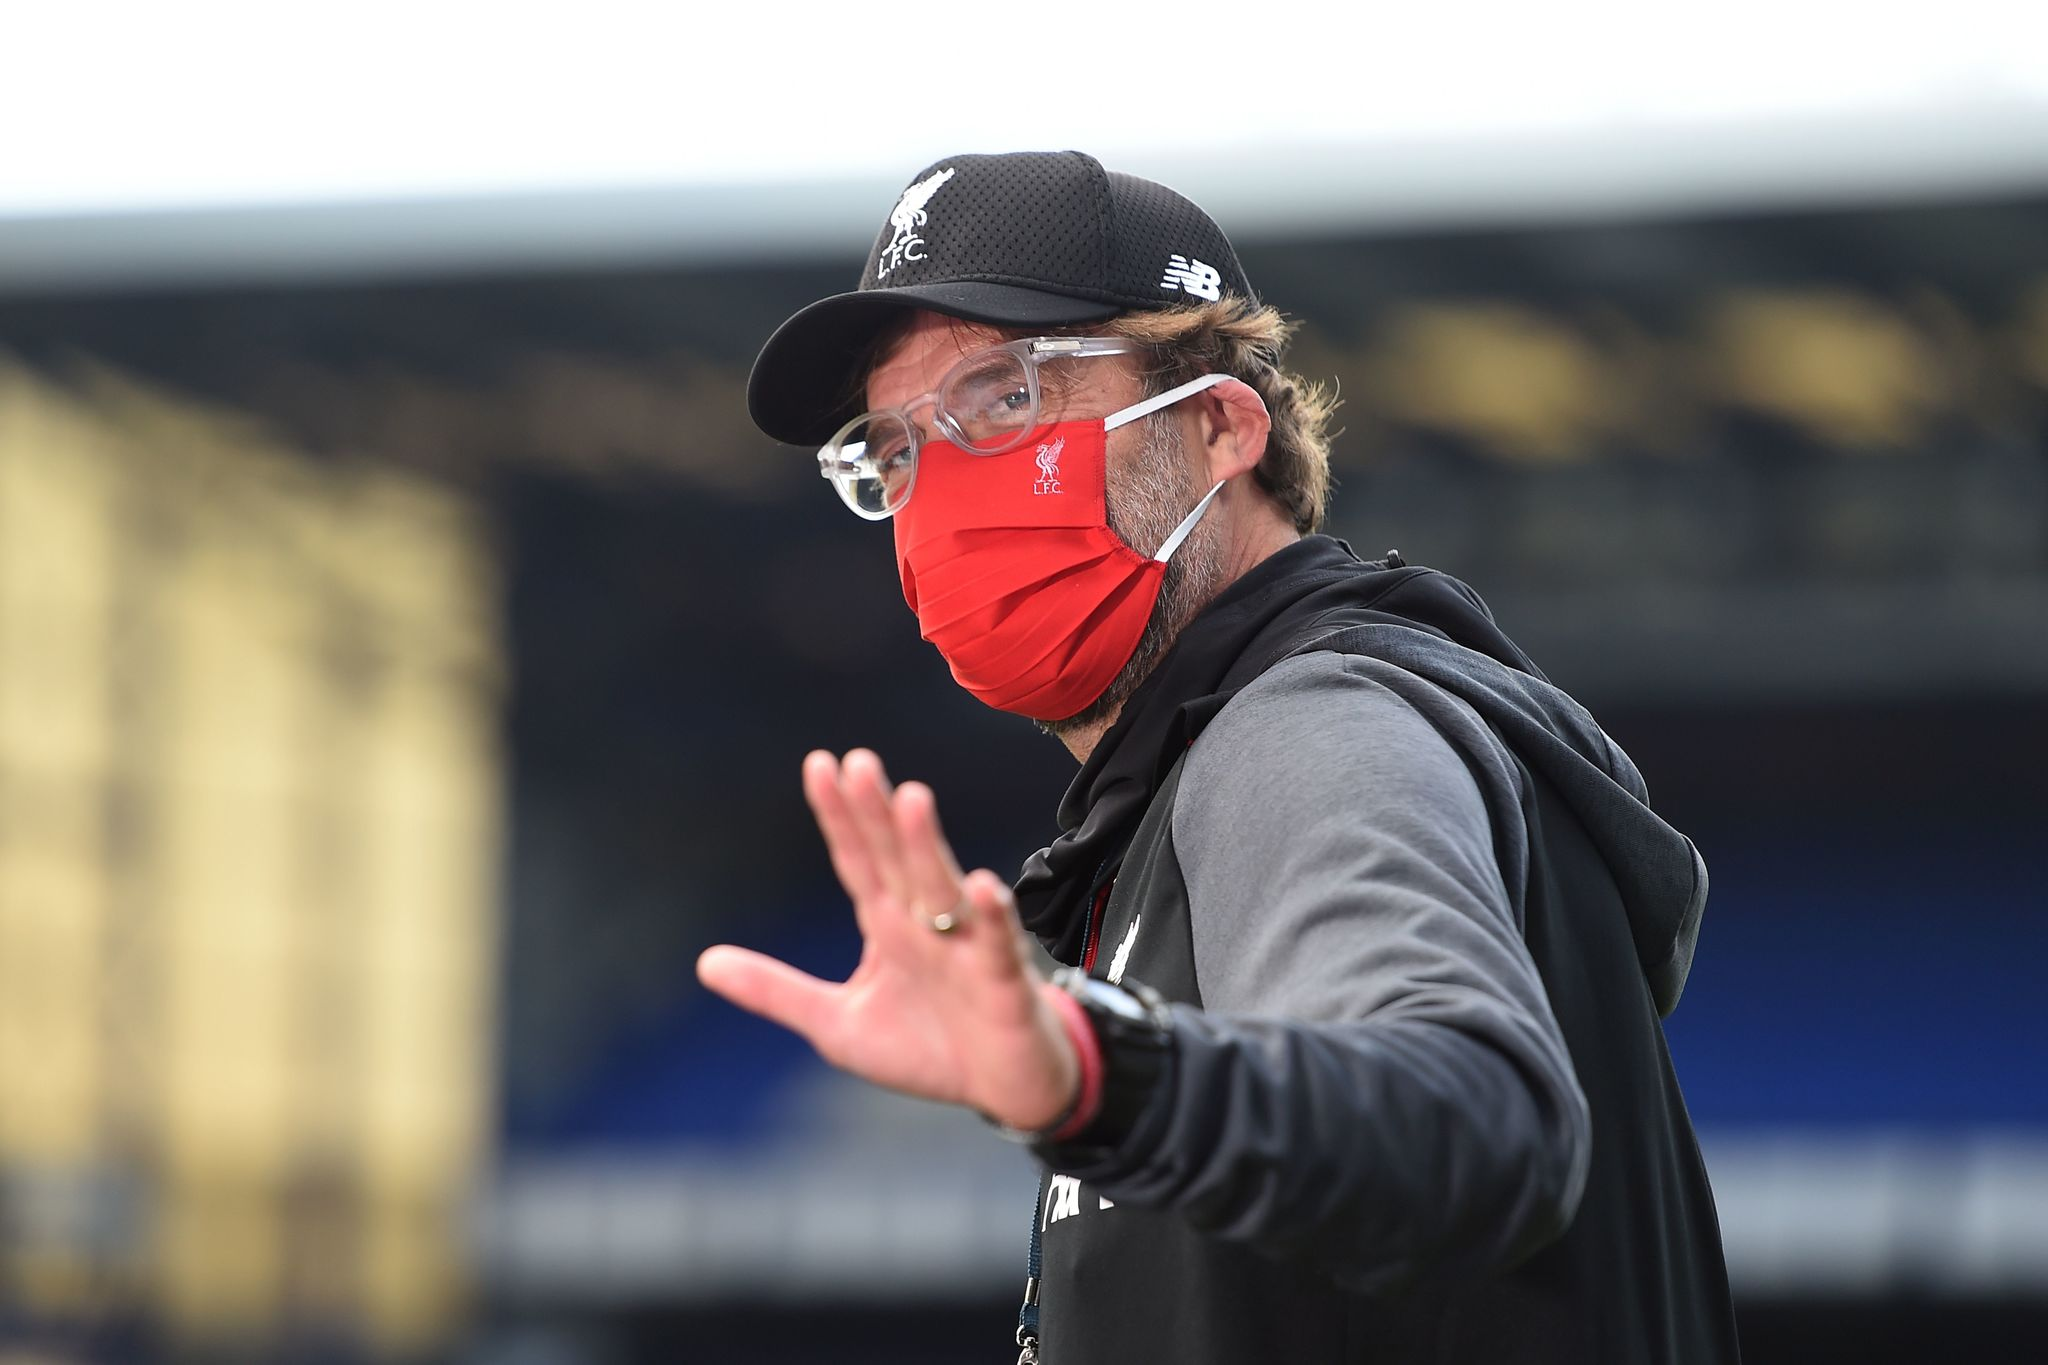 Liverpools German manager Jurgen lt;HIT gt;Klopp lt;/HIT gt; waves as he comes out for the warm up for the English Premier League football match between Everton and Liverpool at Goodison Park in Liverpool, north west England on June 21, 2020. (Photo by PETER POWELL / POOL / AFP) / RESTRICTED TO EDITORIAL USE. No use with unauthorized audio, video, data, fixture lists, club/league logos or live services. Online in-match use limited to 120 images. An additional 40 images may be used in extra time. No video emulation. Social media in-match use limited to 120 images. An additional 40 images may be used in extra time. No use in betting publications, games or single club/league/player publications. /